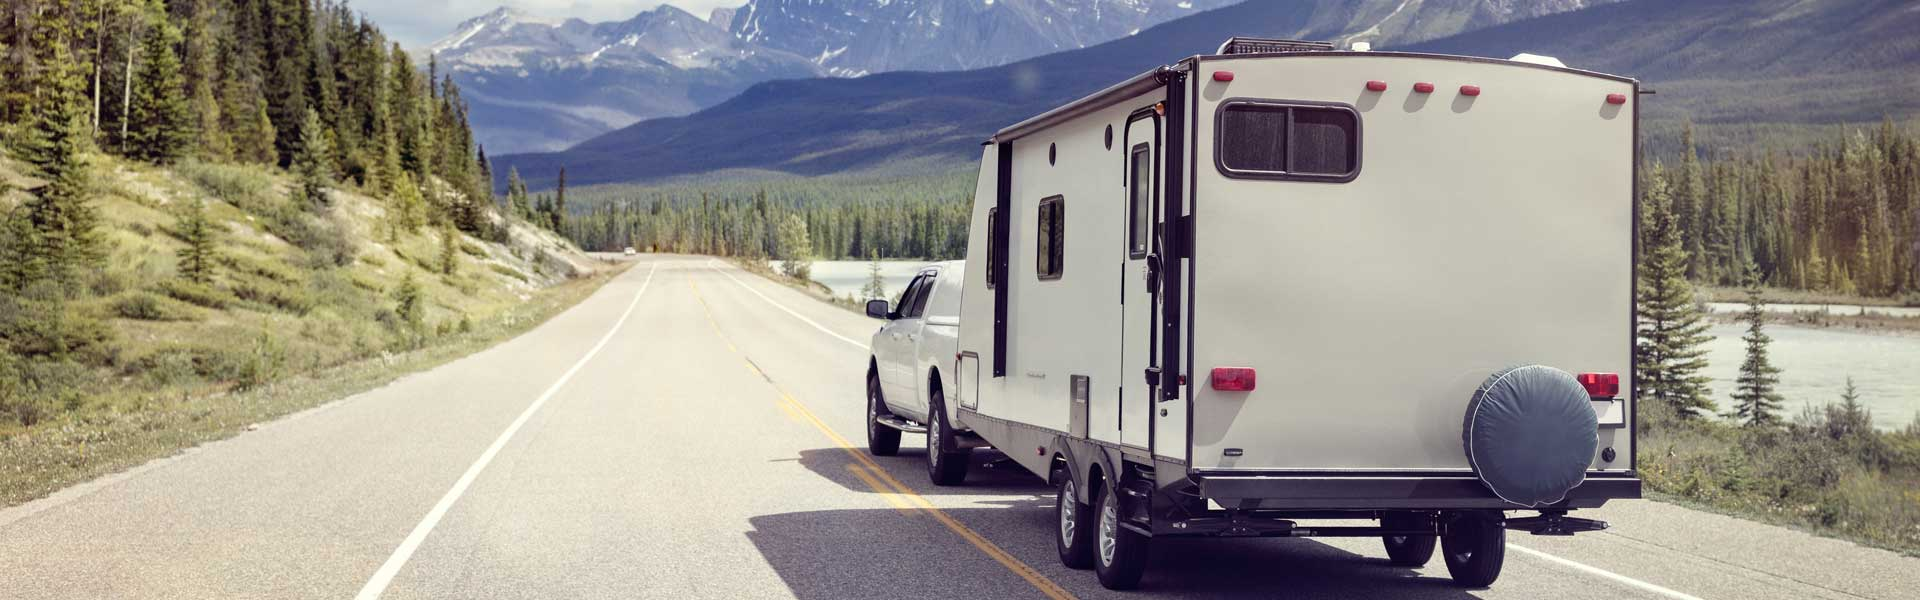 rv-camping-open-road